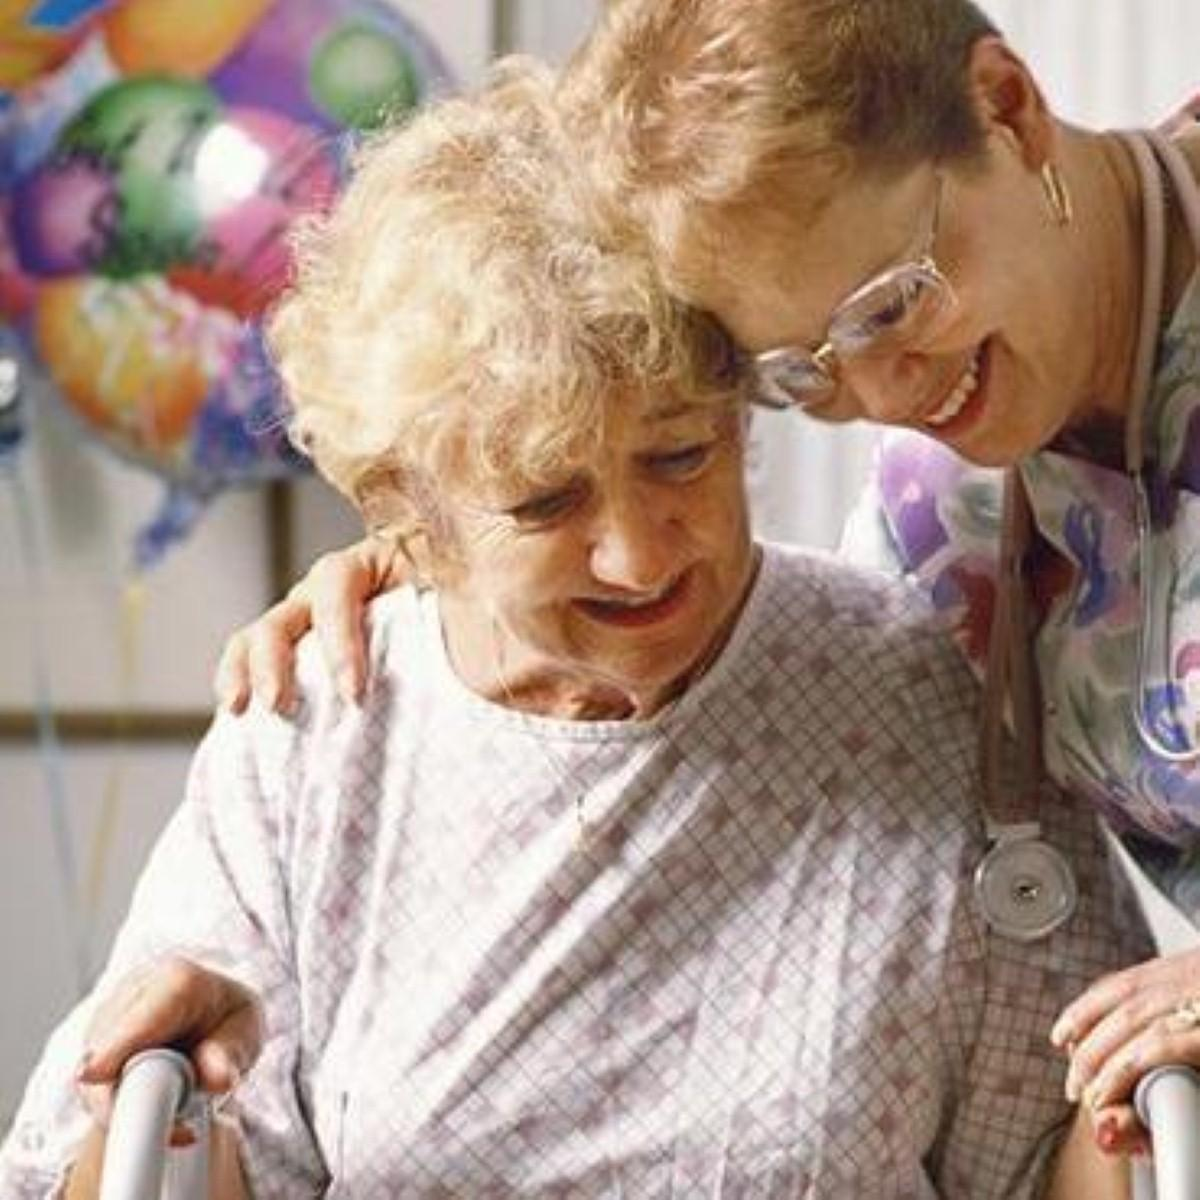 Care home regulation 'a failure'